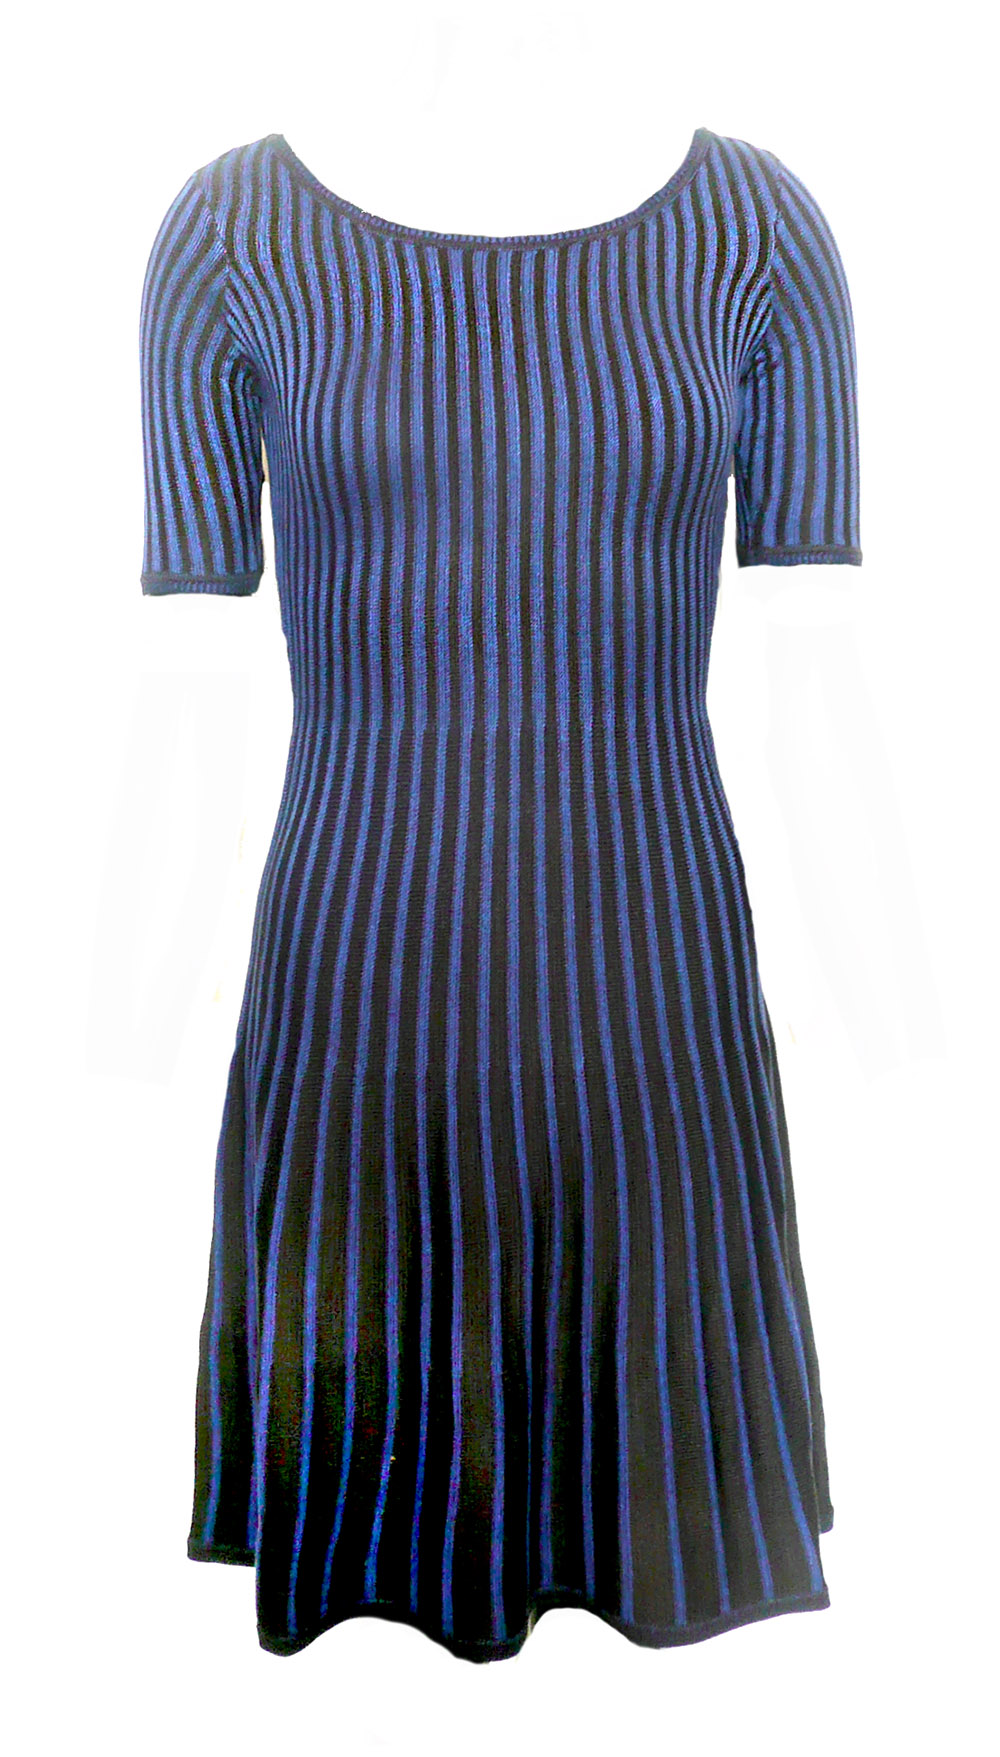 dress marc ny roy stripe.jpg